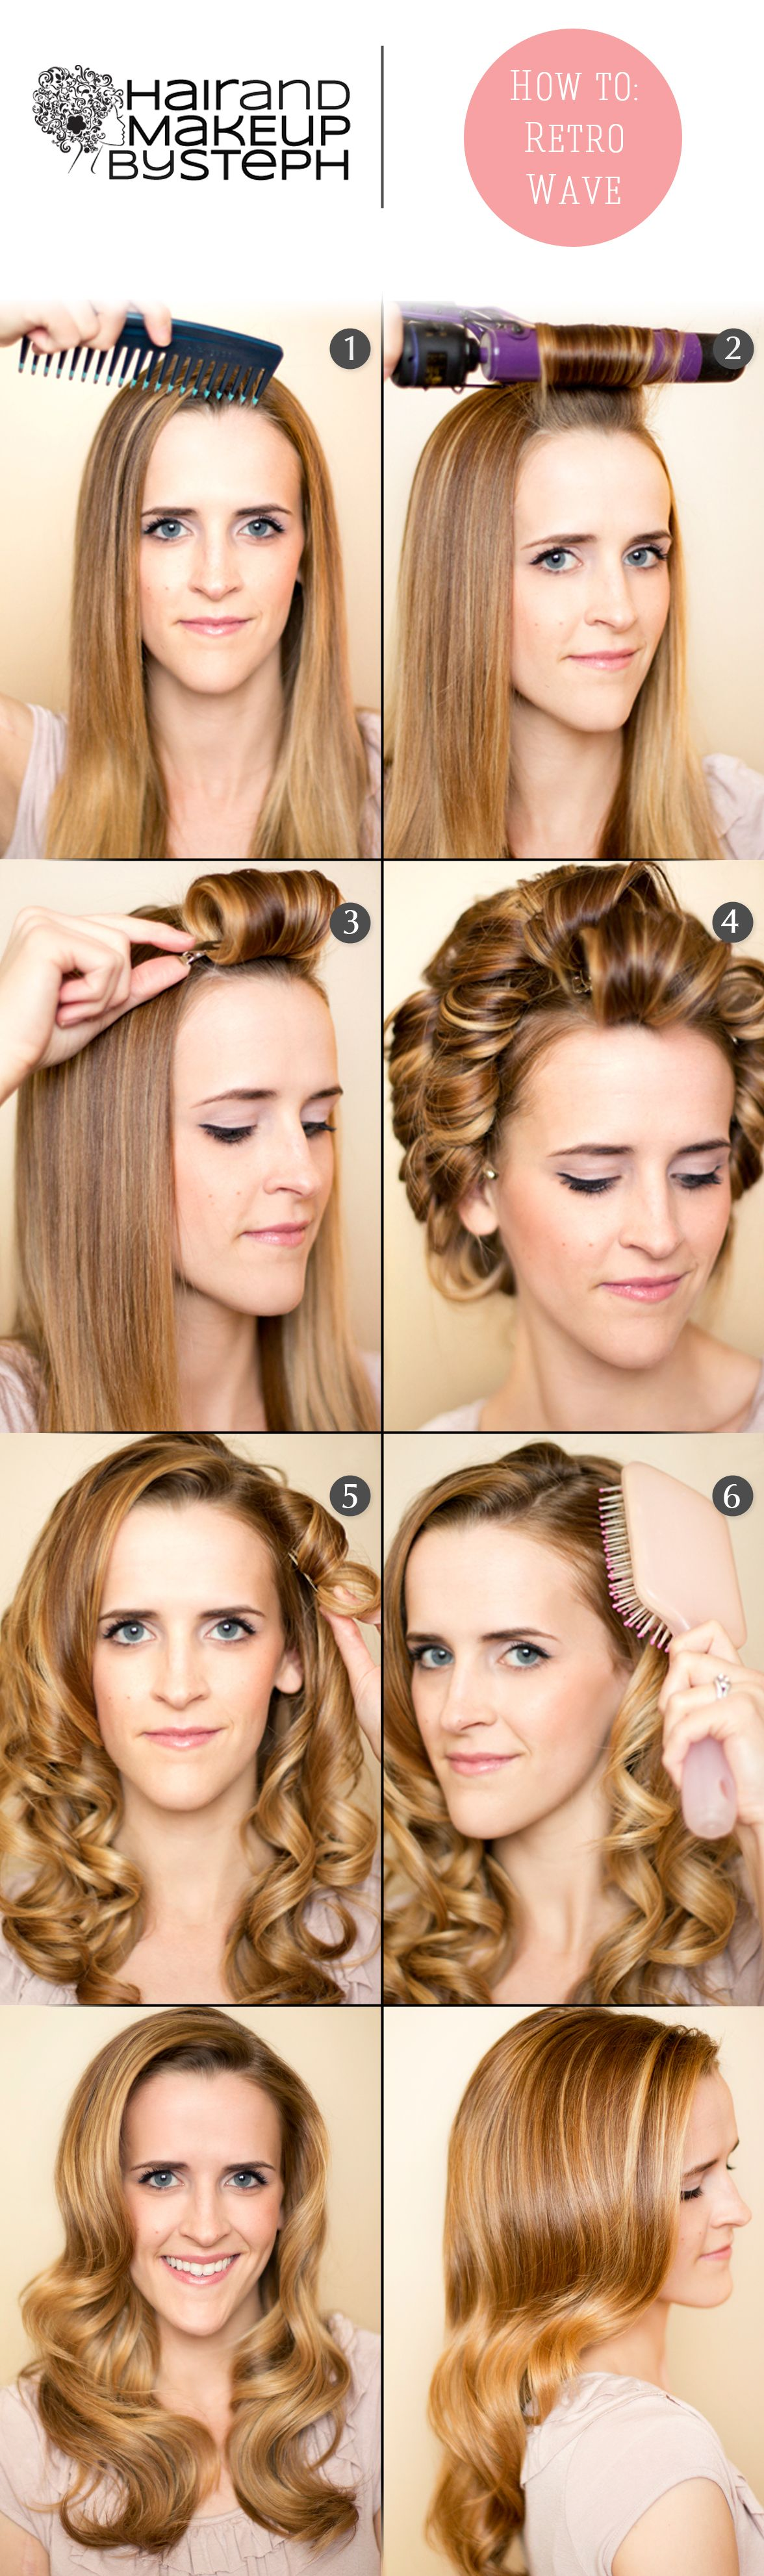 How to do retro curls via blog.hairandmakeupbysteph.com